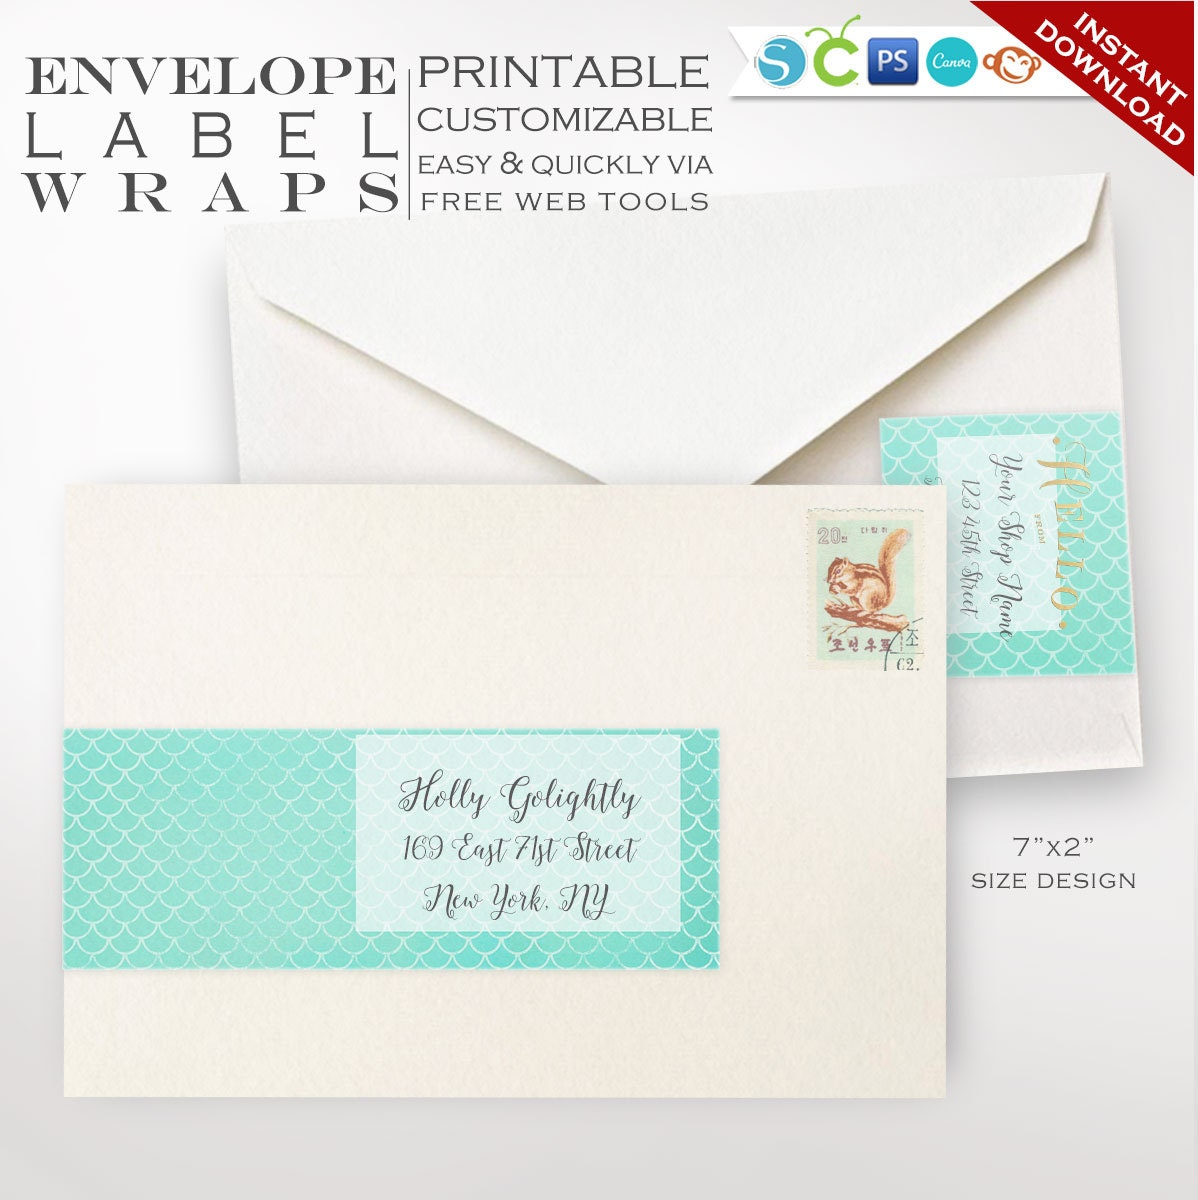 Envelope Wrap Labels Mermaid Printable Wrap Around Address